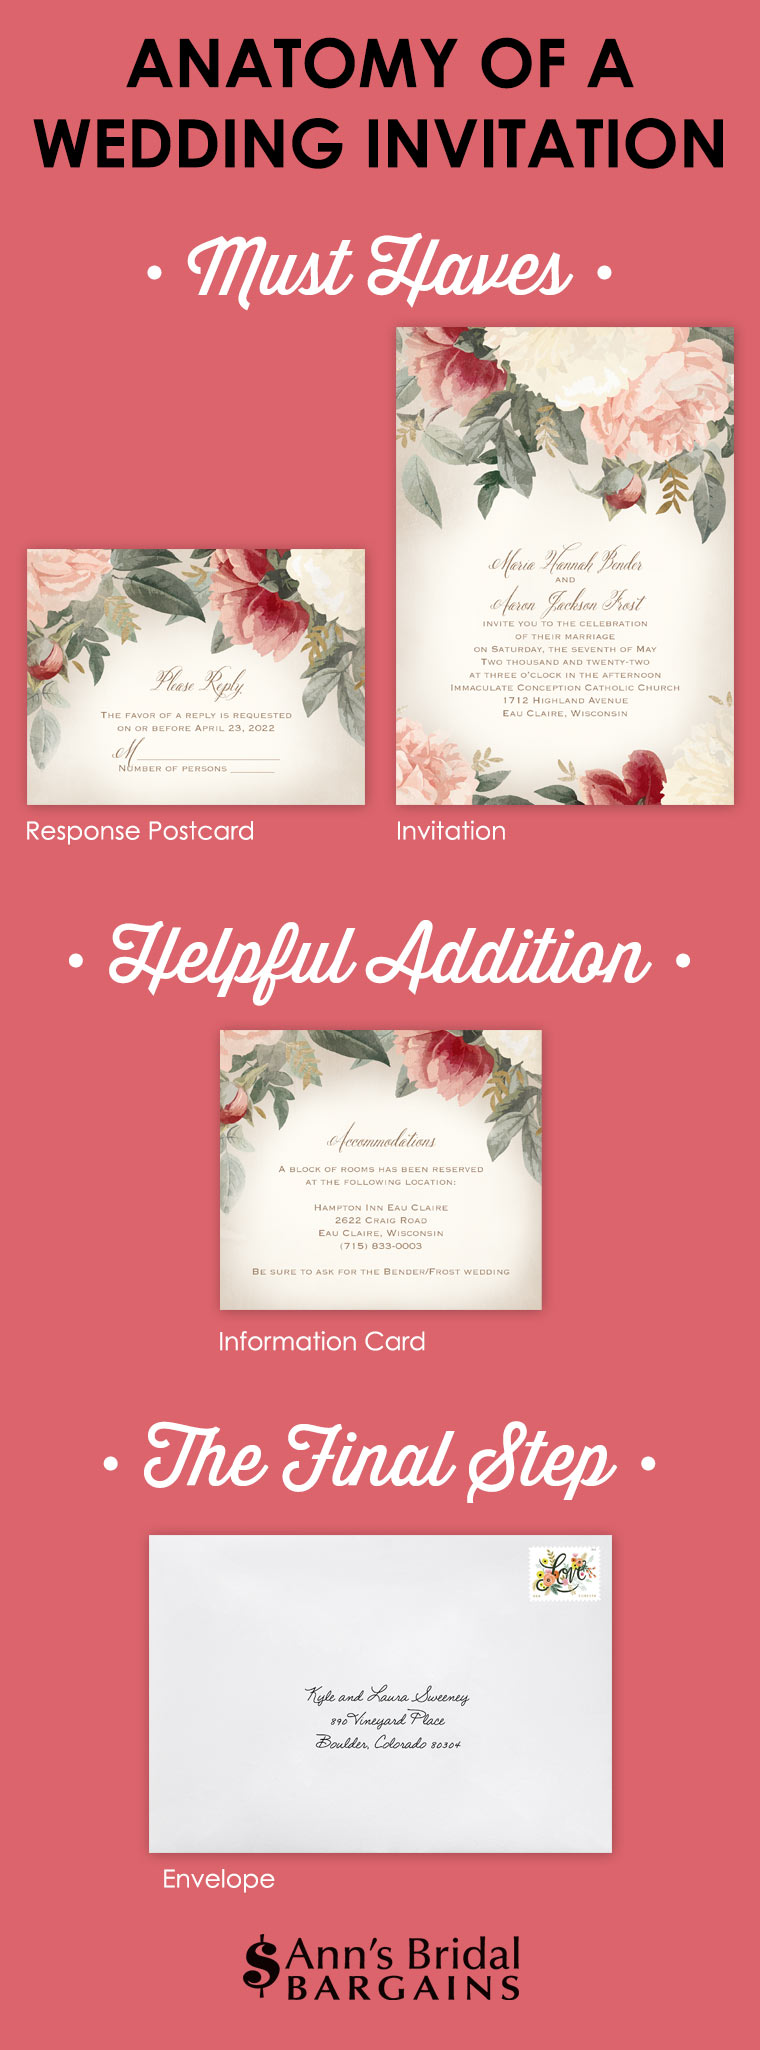 Anatomy of a Wedding Invitation